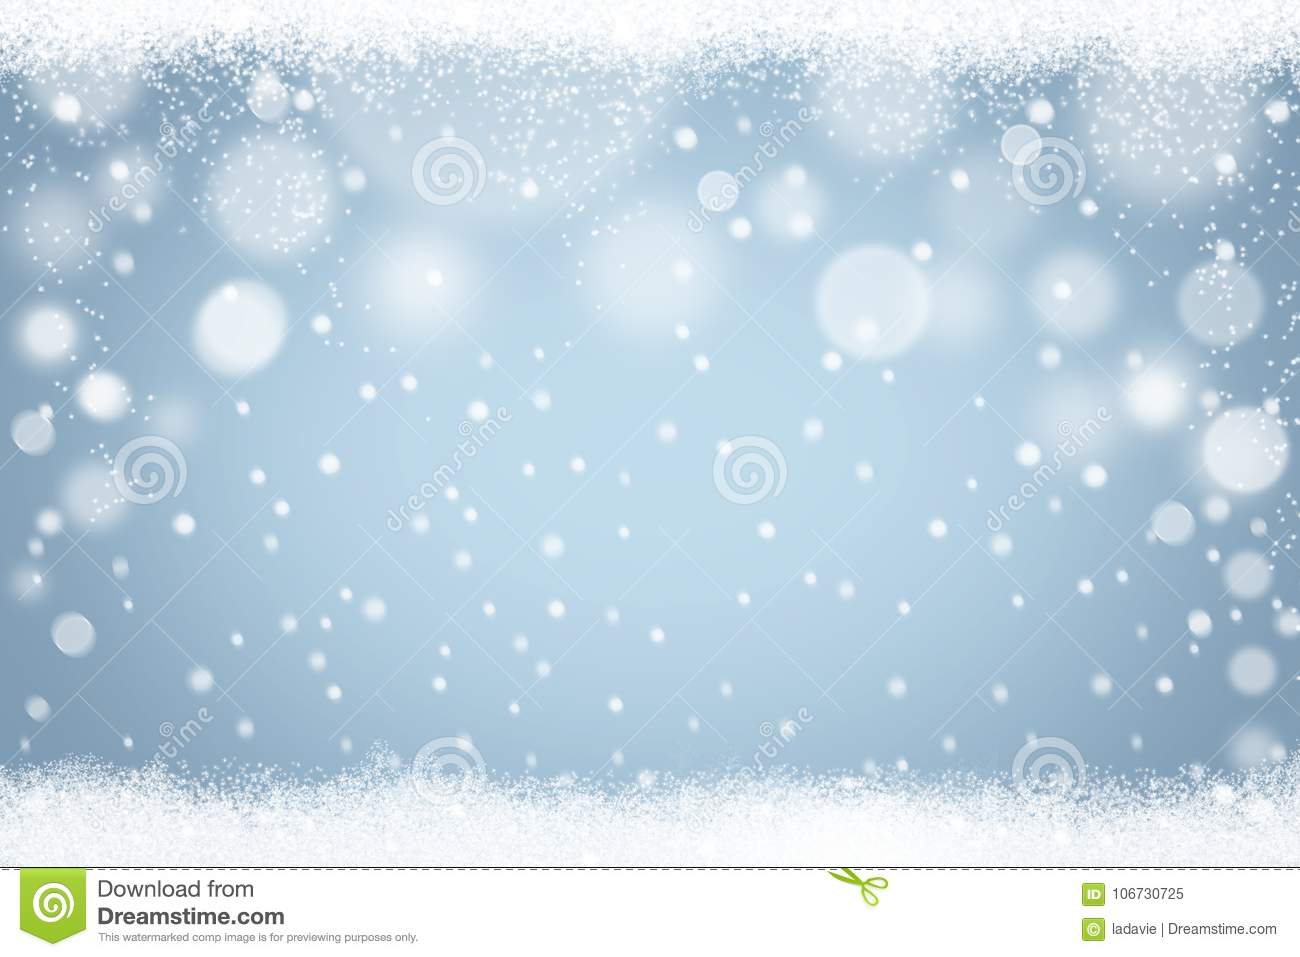 Winter snowflakes light blue bokeh background. Abstract Christmas holiday snow backdrop